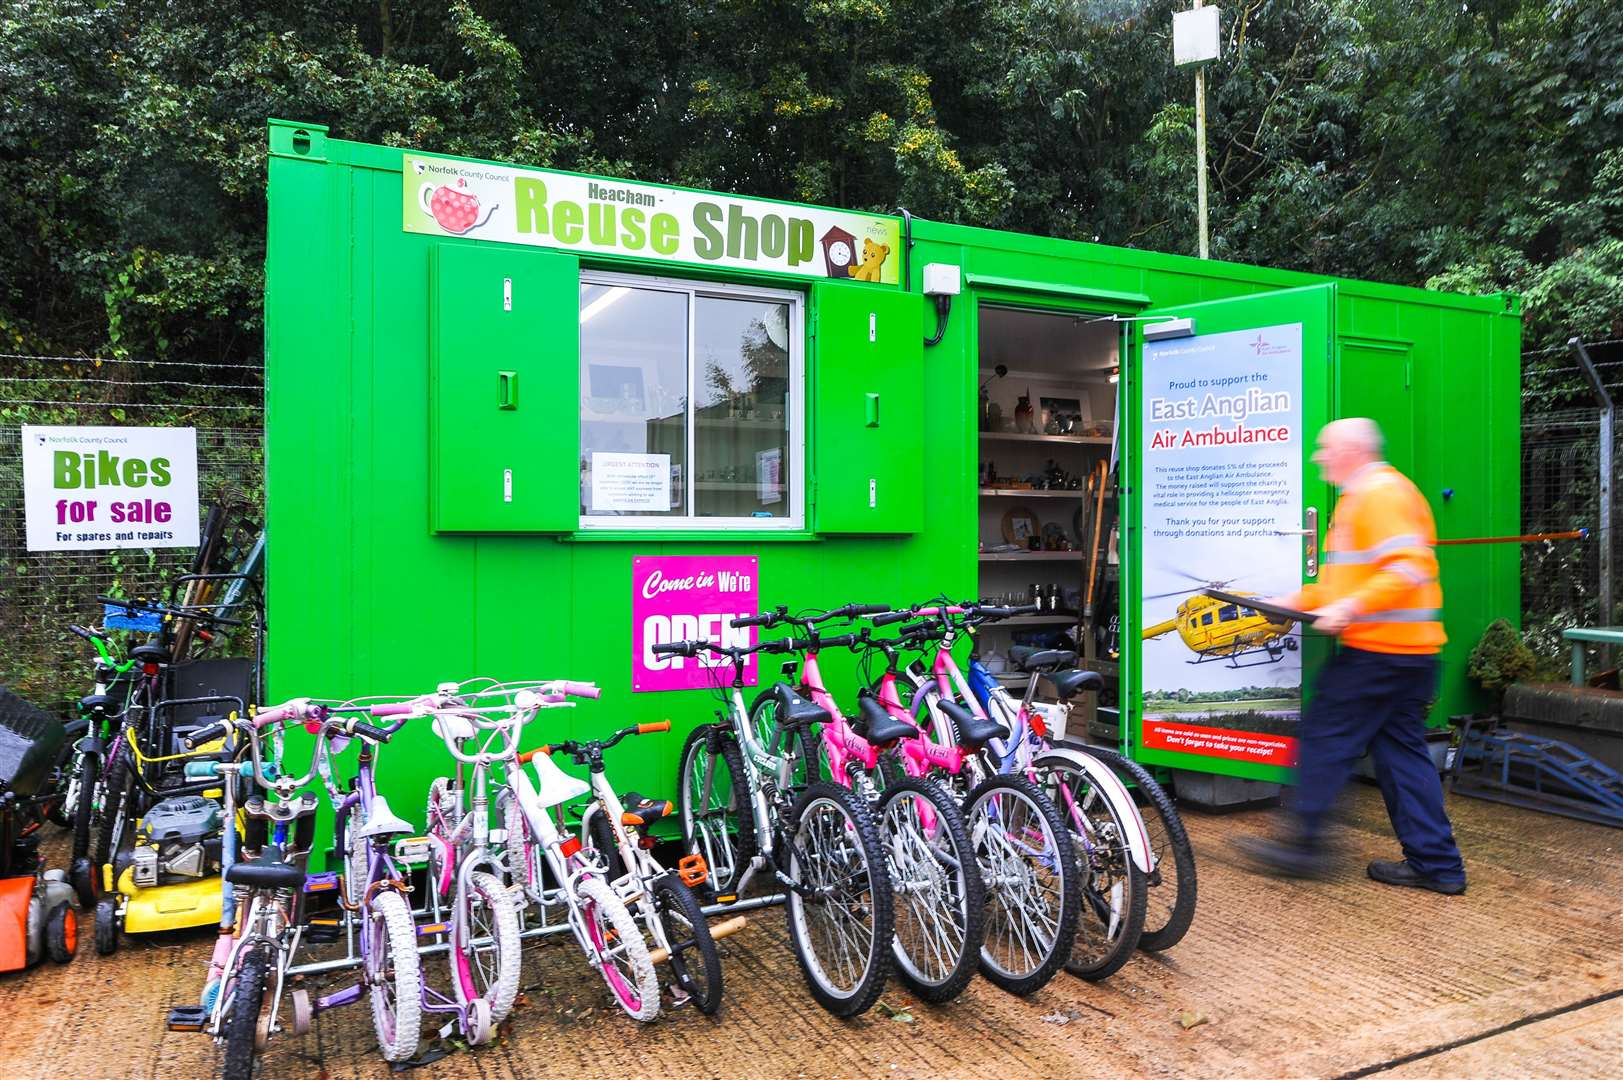 The new reuse shop at Heacham's recycling centre (17507112)